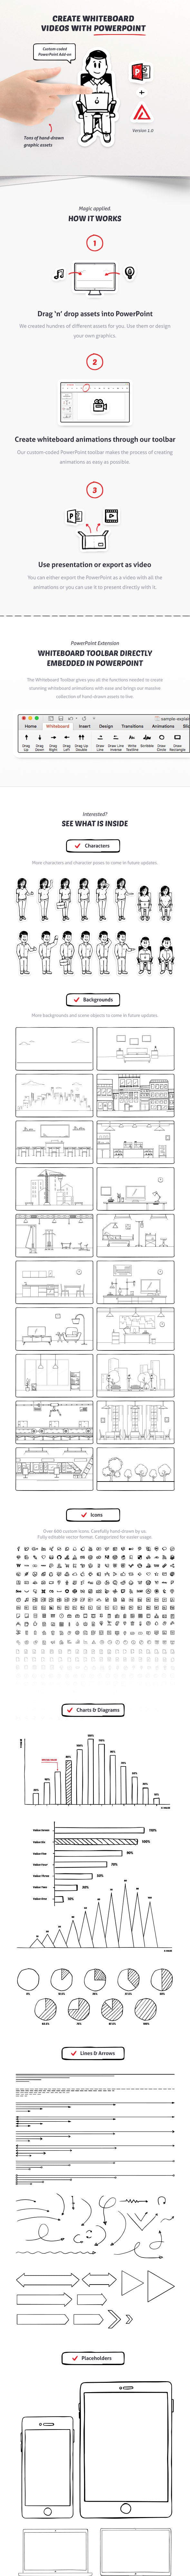 whiteboard powerpoint toolkit by ercn1903 graphicriver